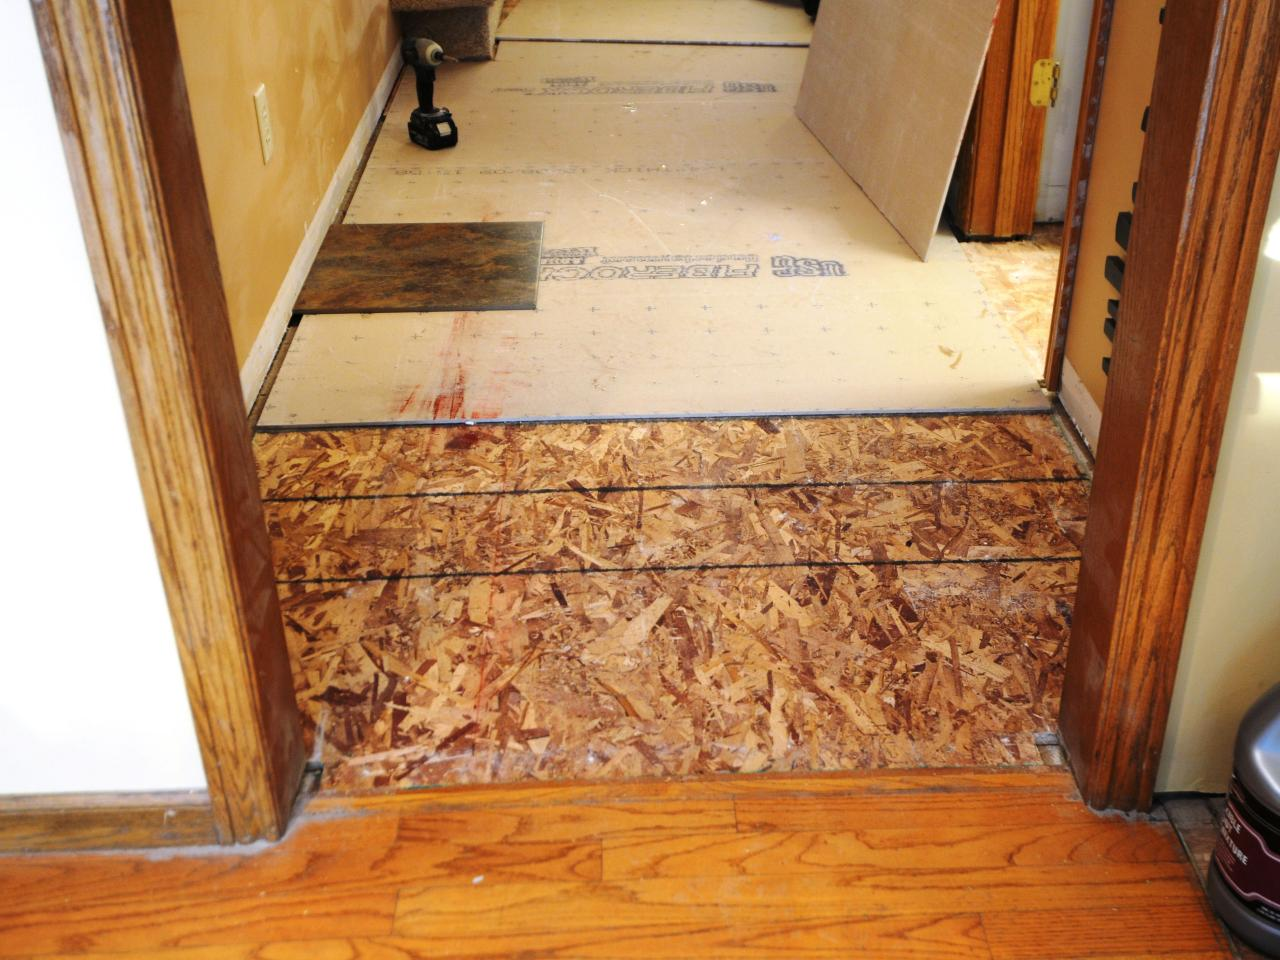 Laying A New Tile Floor Howtos DIY - Install vinyl flooring over plywood subfloor